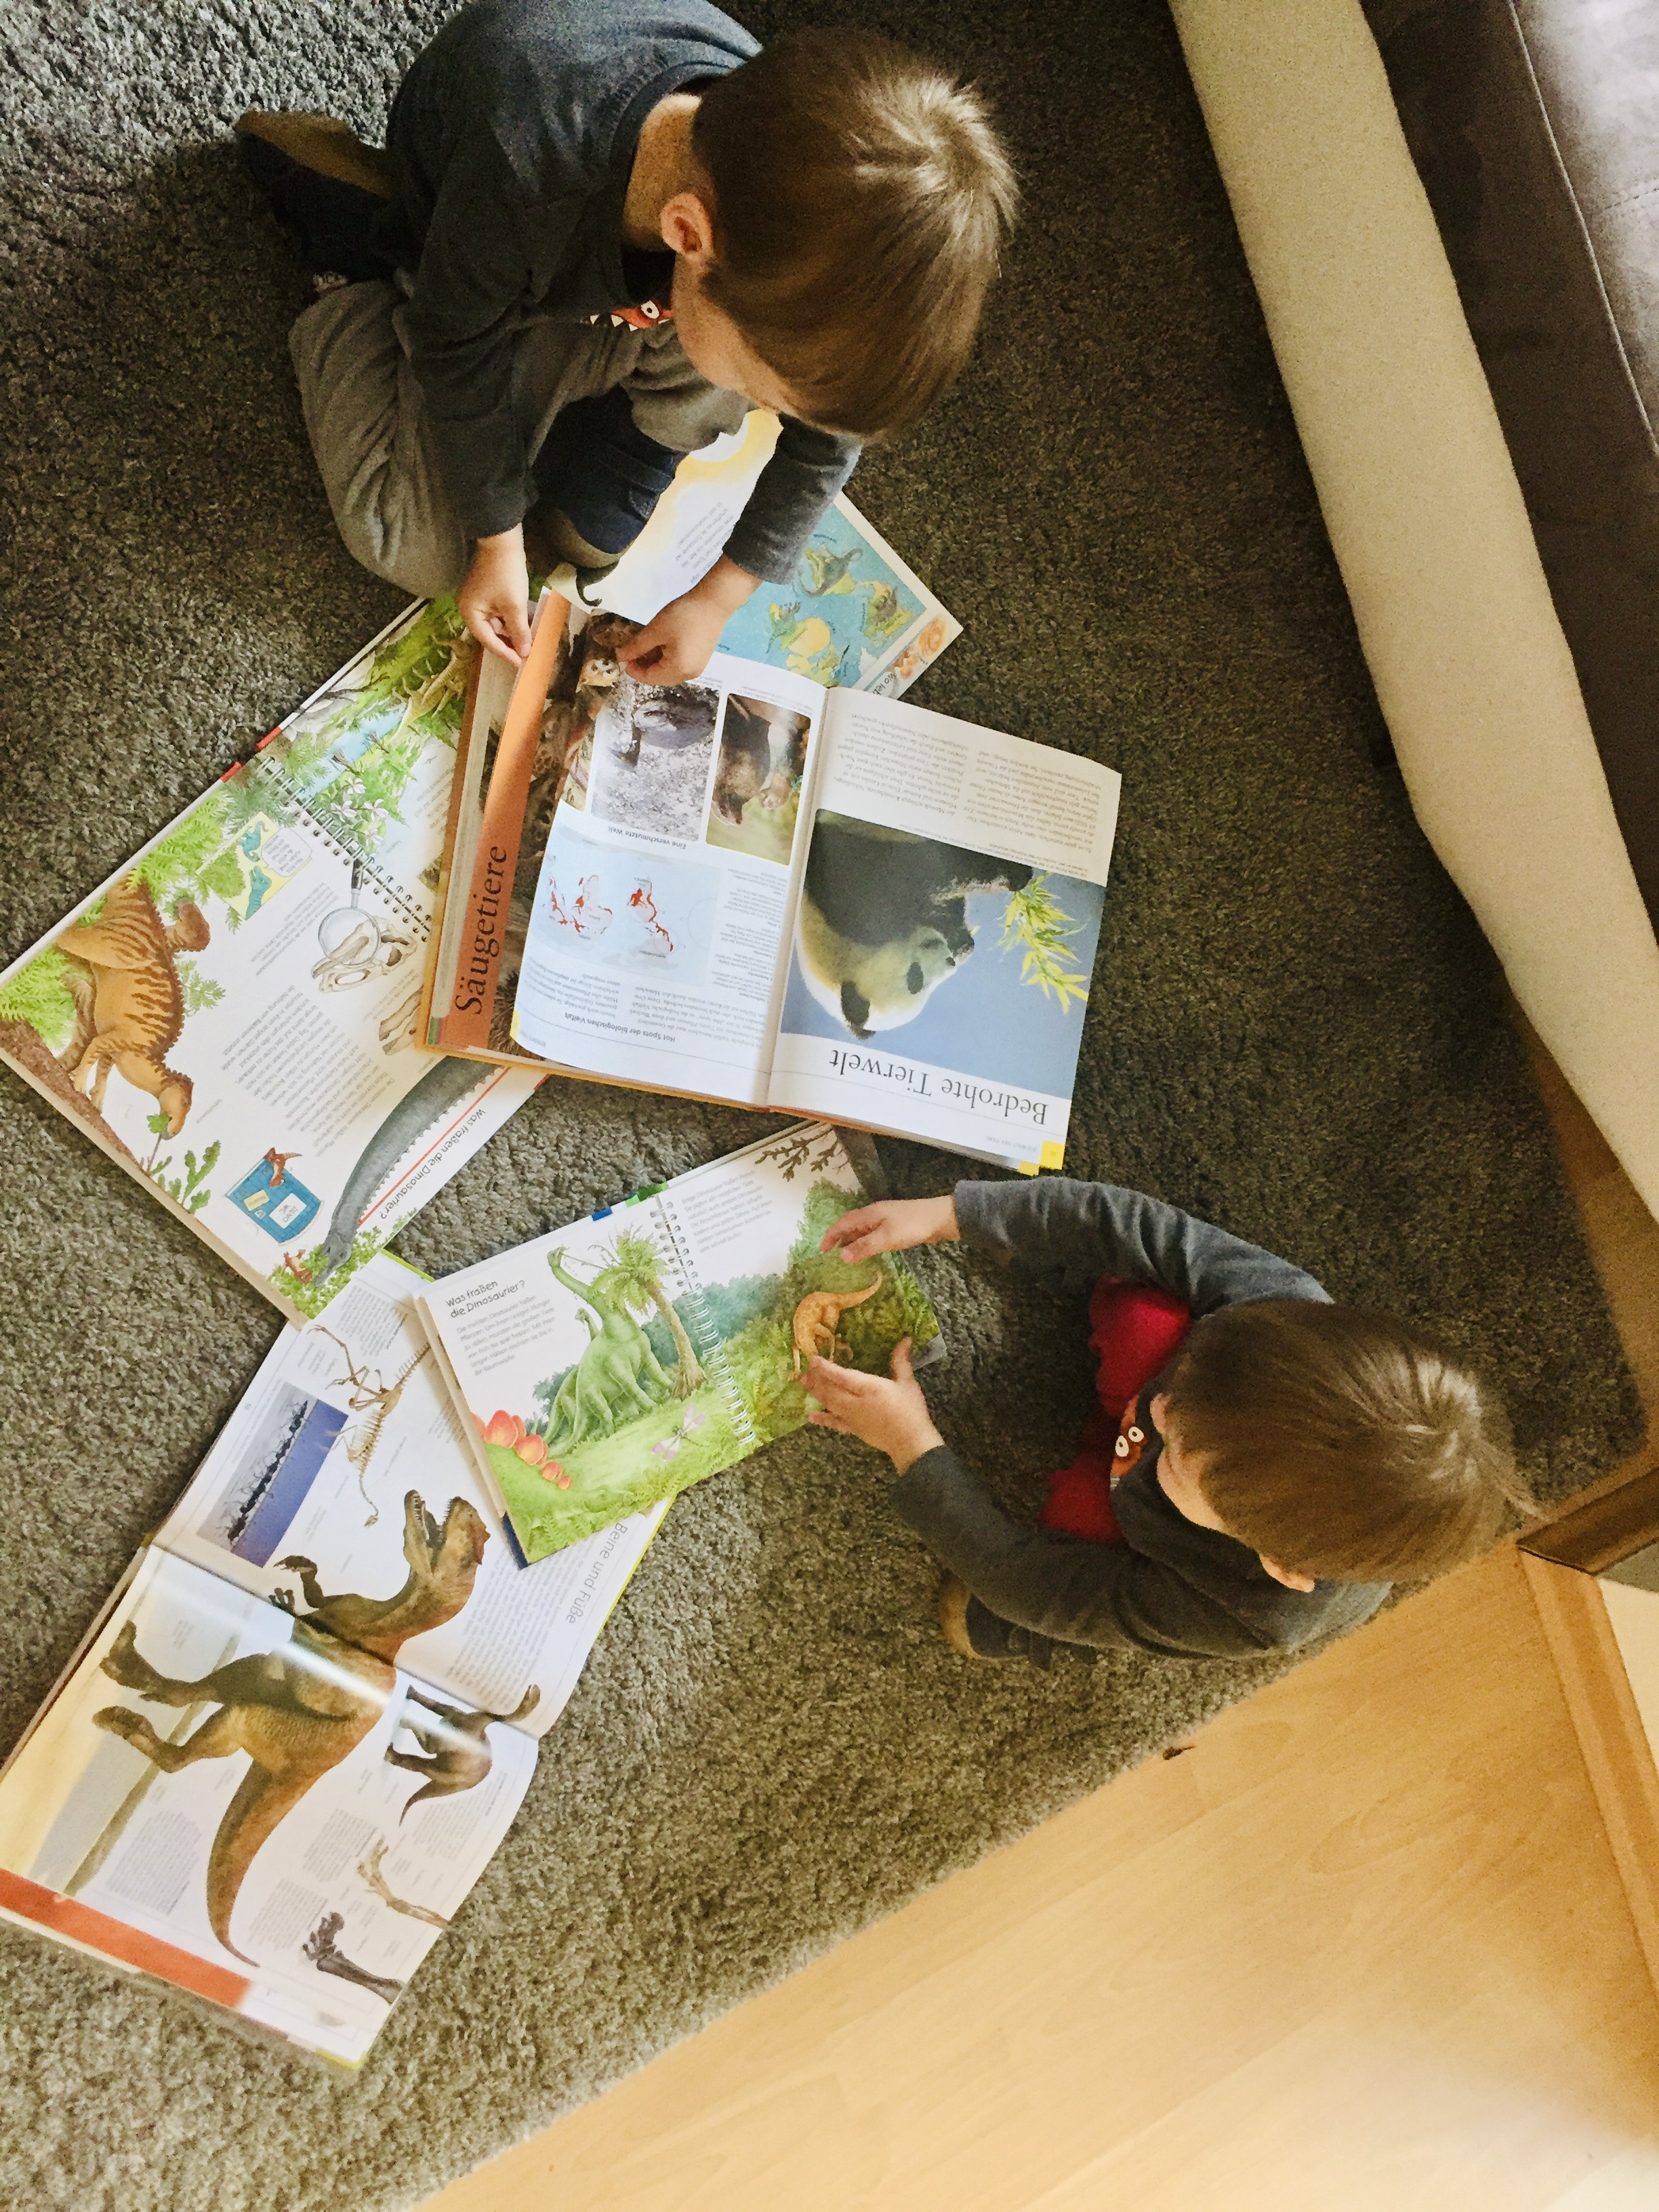 boys reading books about dinosaurs